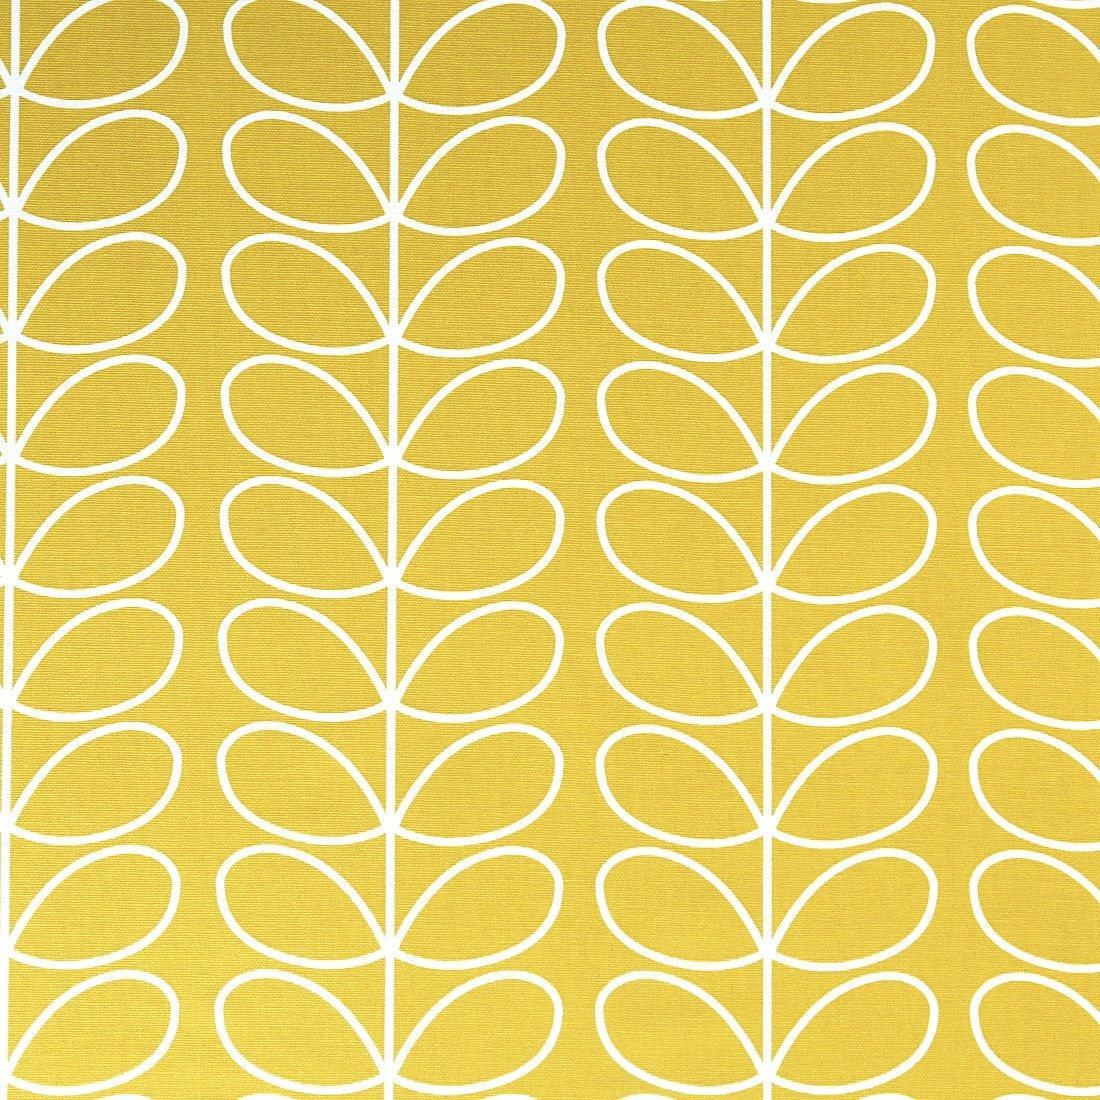 Cotton Orla Kiely Fabric Retro Colorful Sold By Meter